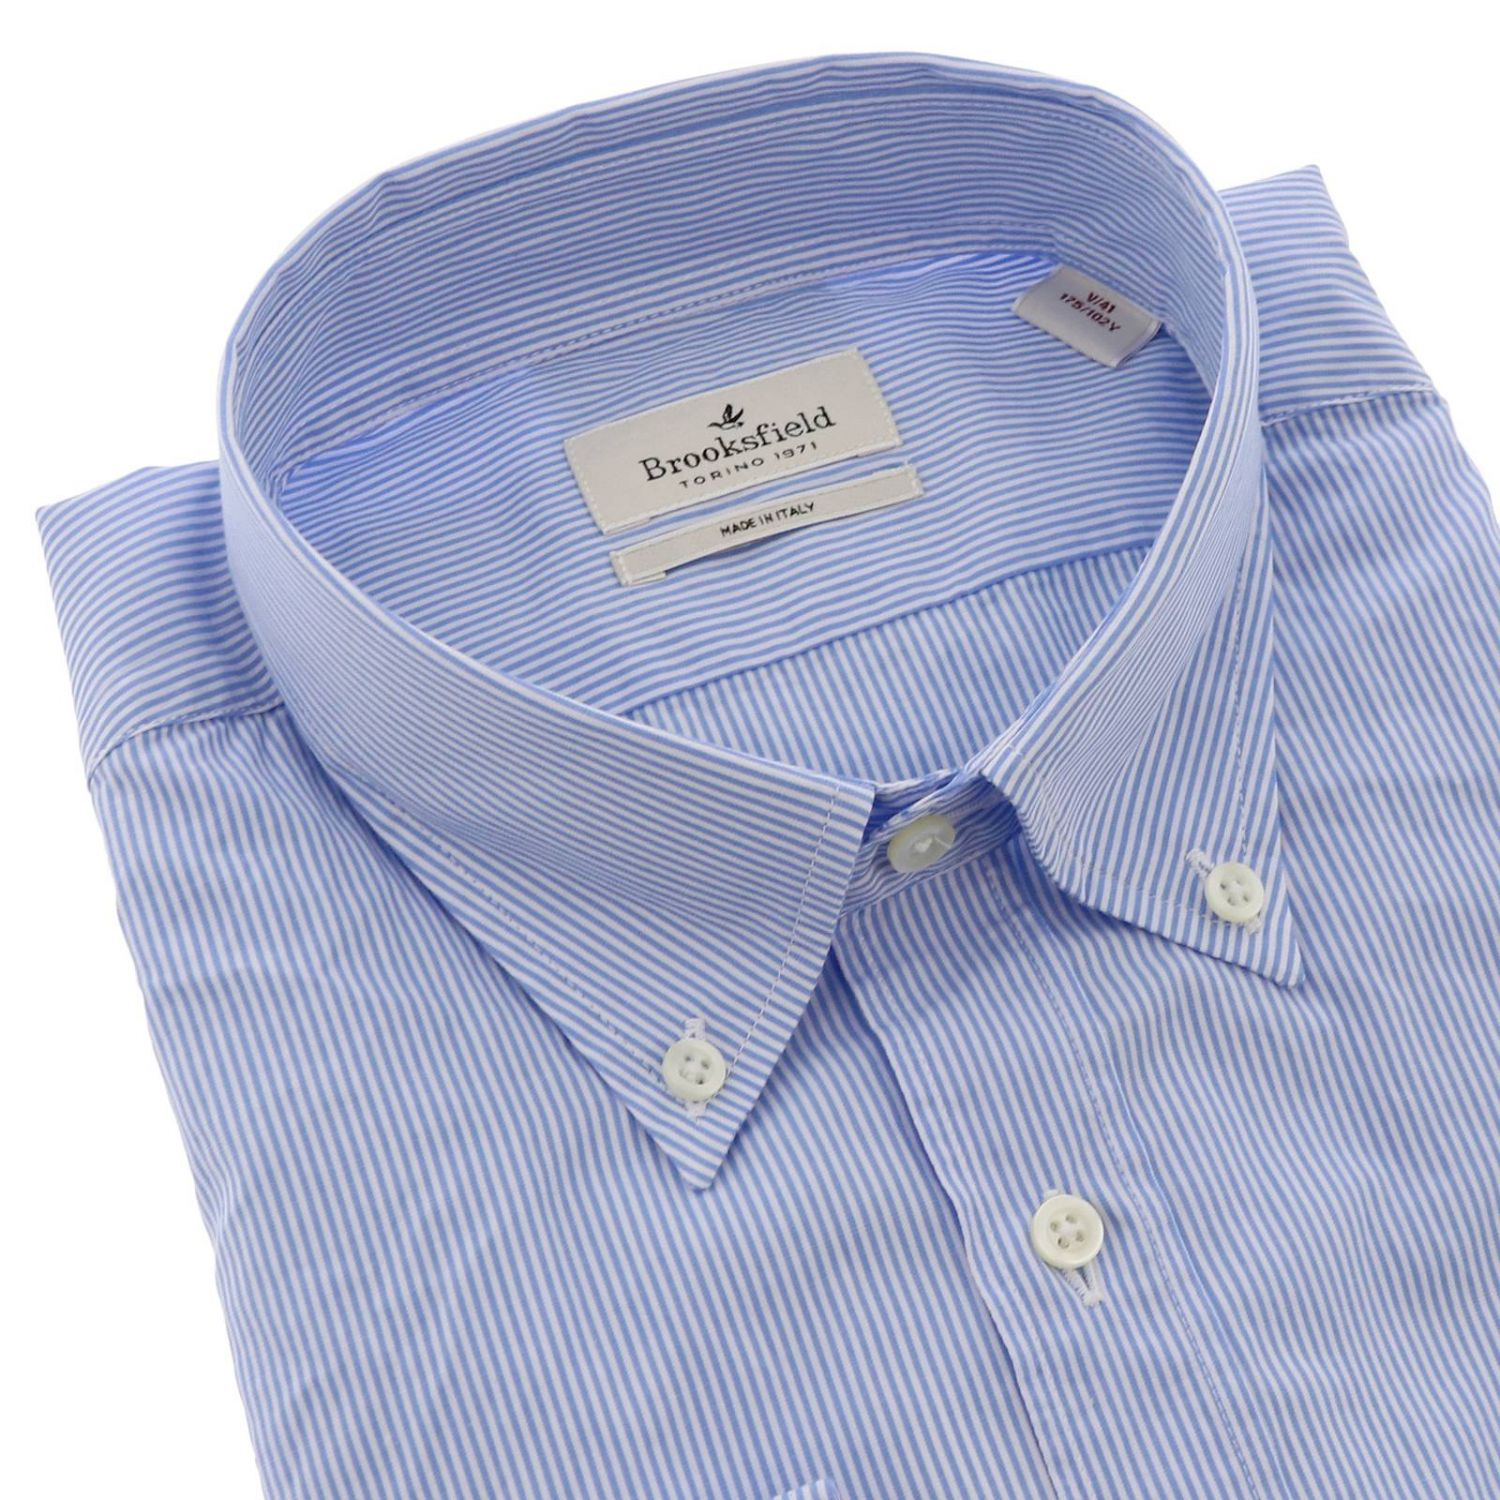 Shirt men Brooksfield gnawed blue 2